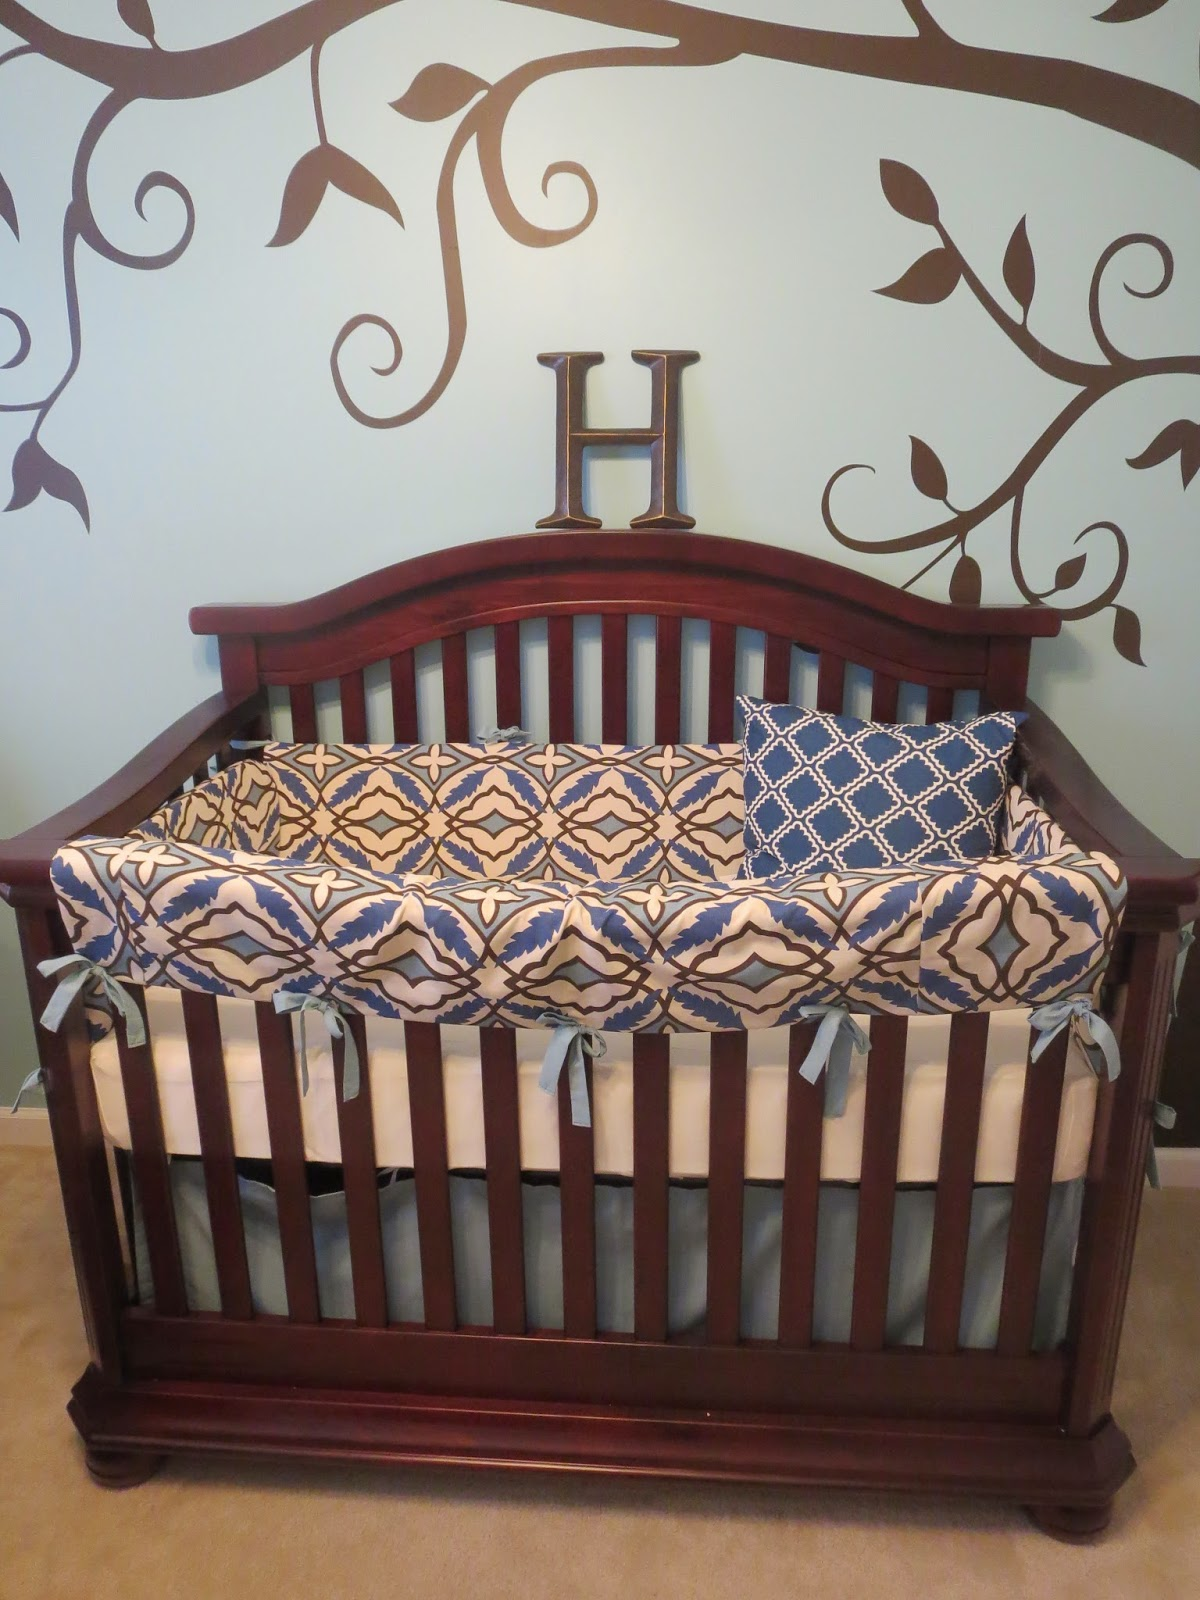 Crib for sale in lahore - My Next Project Was A Wall Collage Over Harrison S Dresser I Had Seen Several Collages In Baby Nurseries And I Really Loved The Look Of It